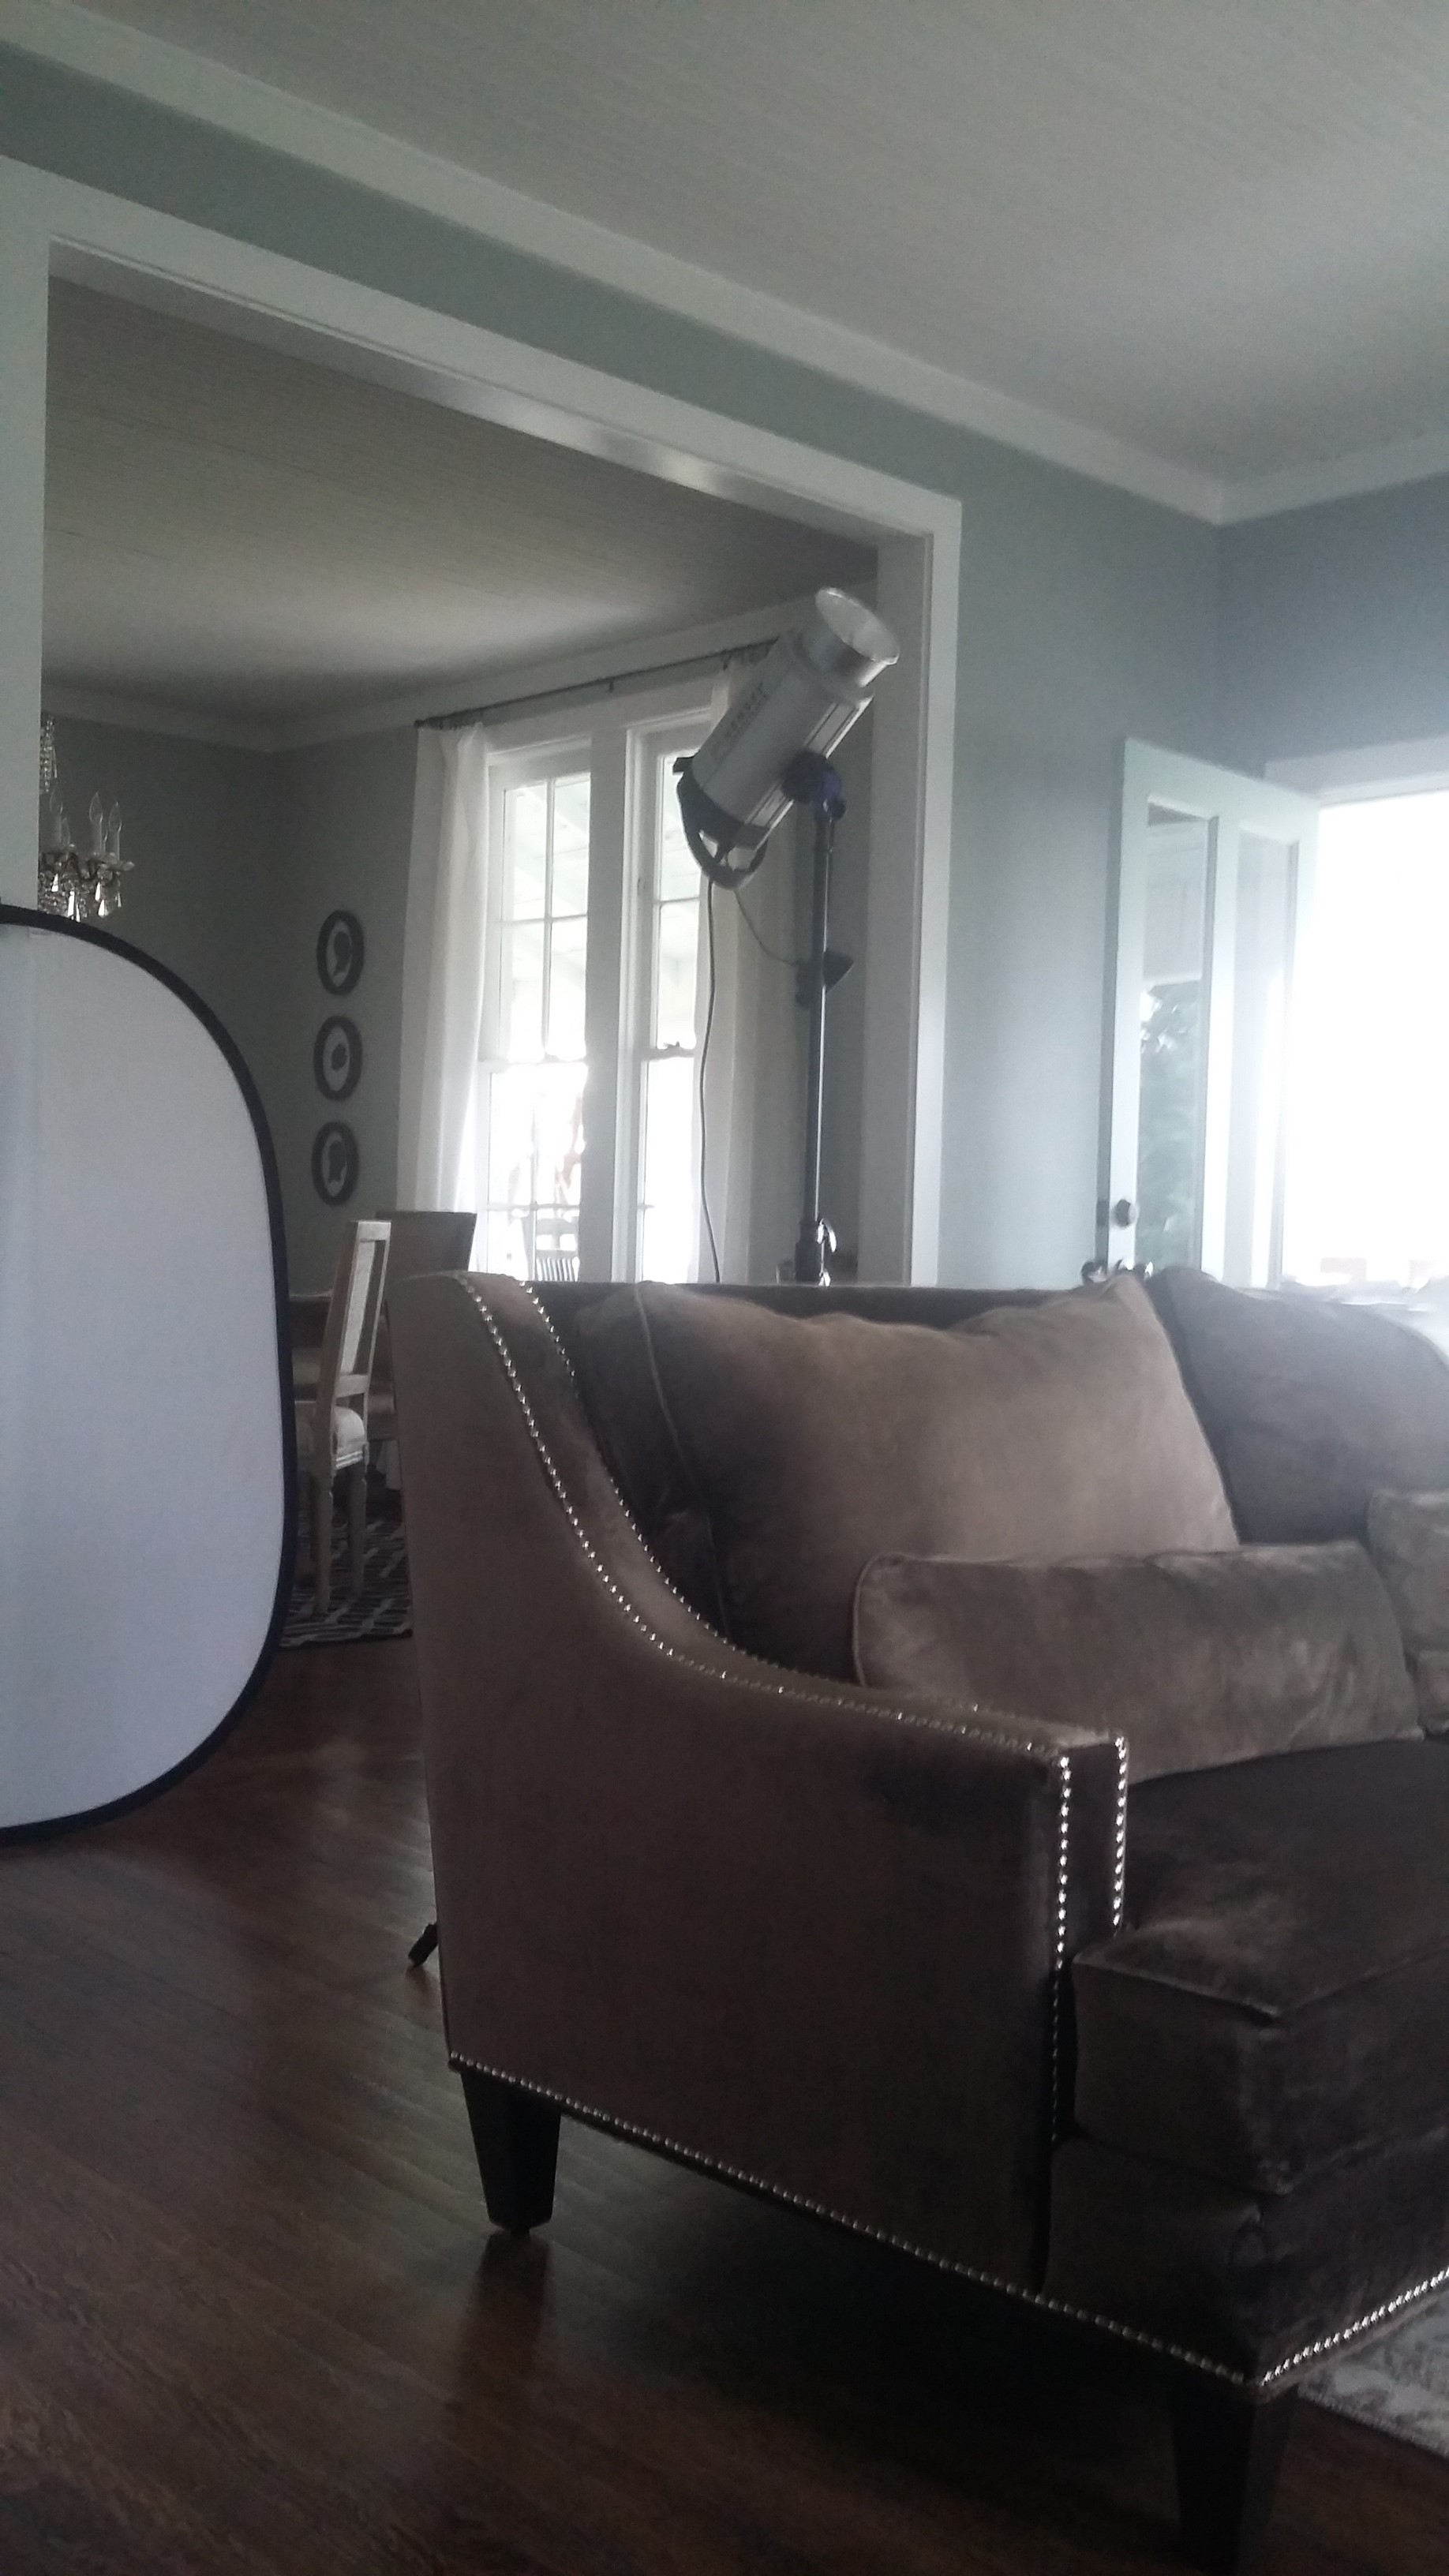 Behind the scenes of a home decor magazine photo shoot 3